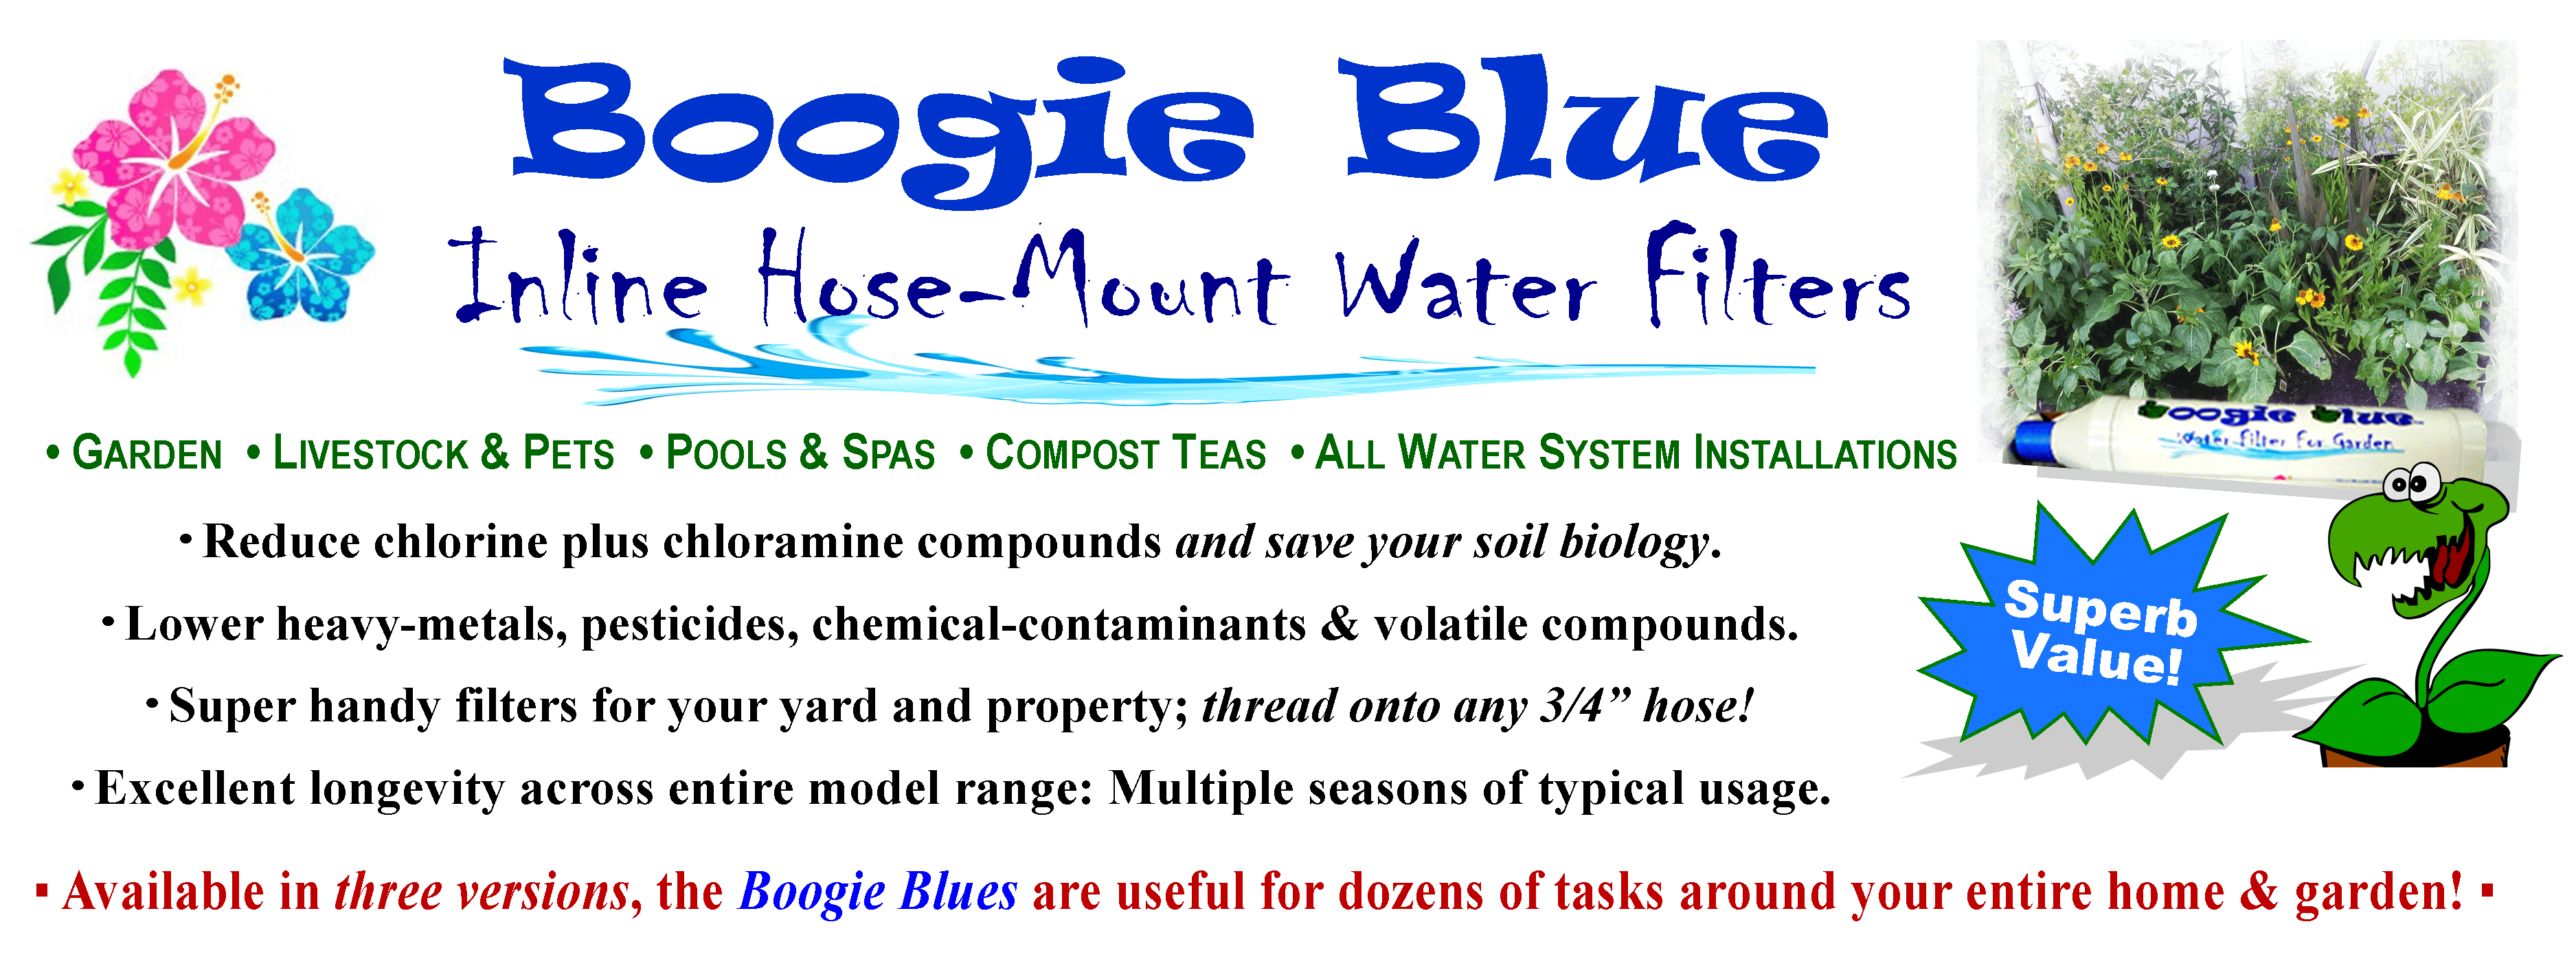 Boogie Blue Filter Banner Sign 12 5x4 75 White Extended Vbackground